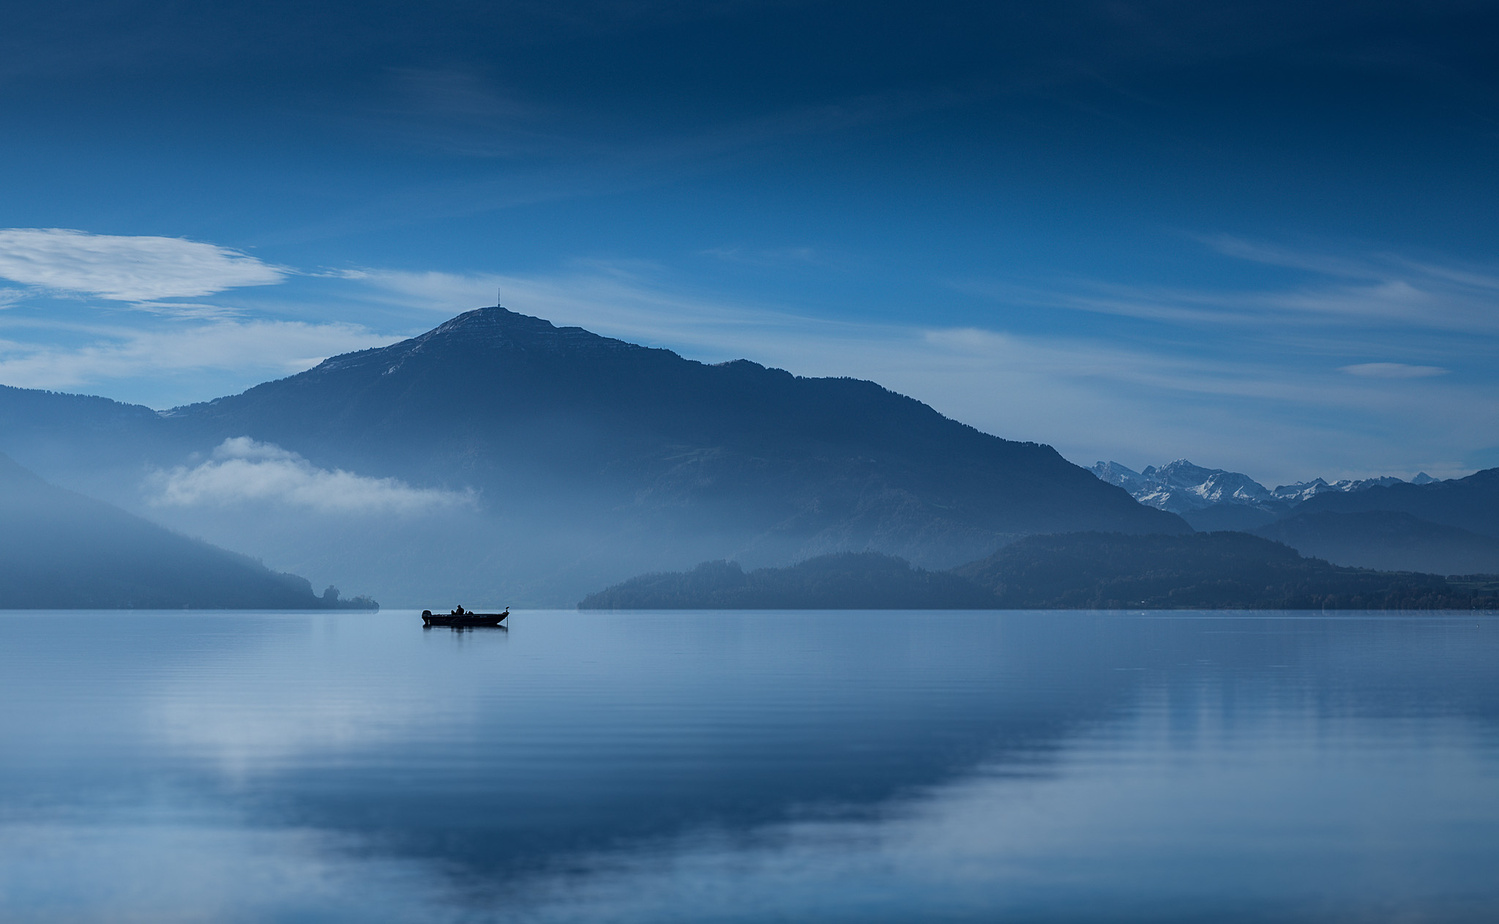 The lonely angler by Axel Jusseit